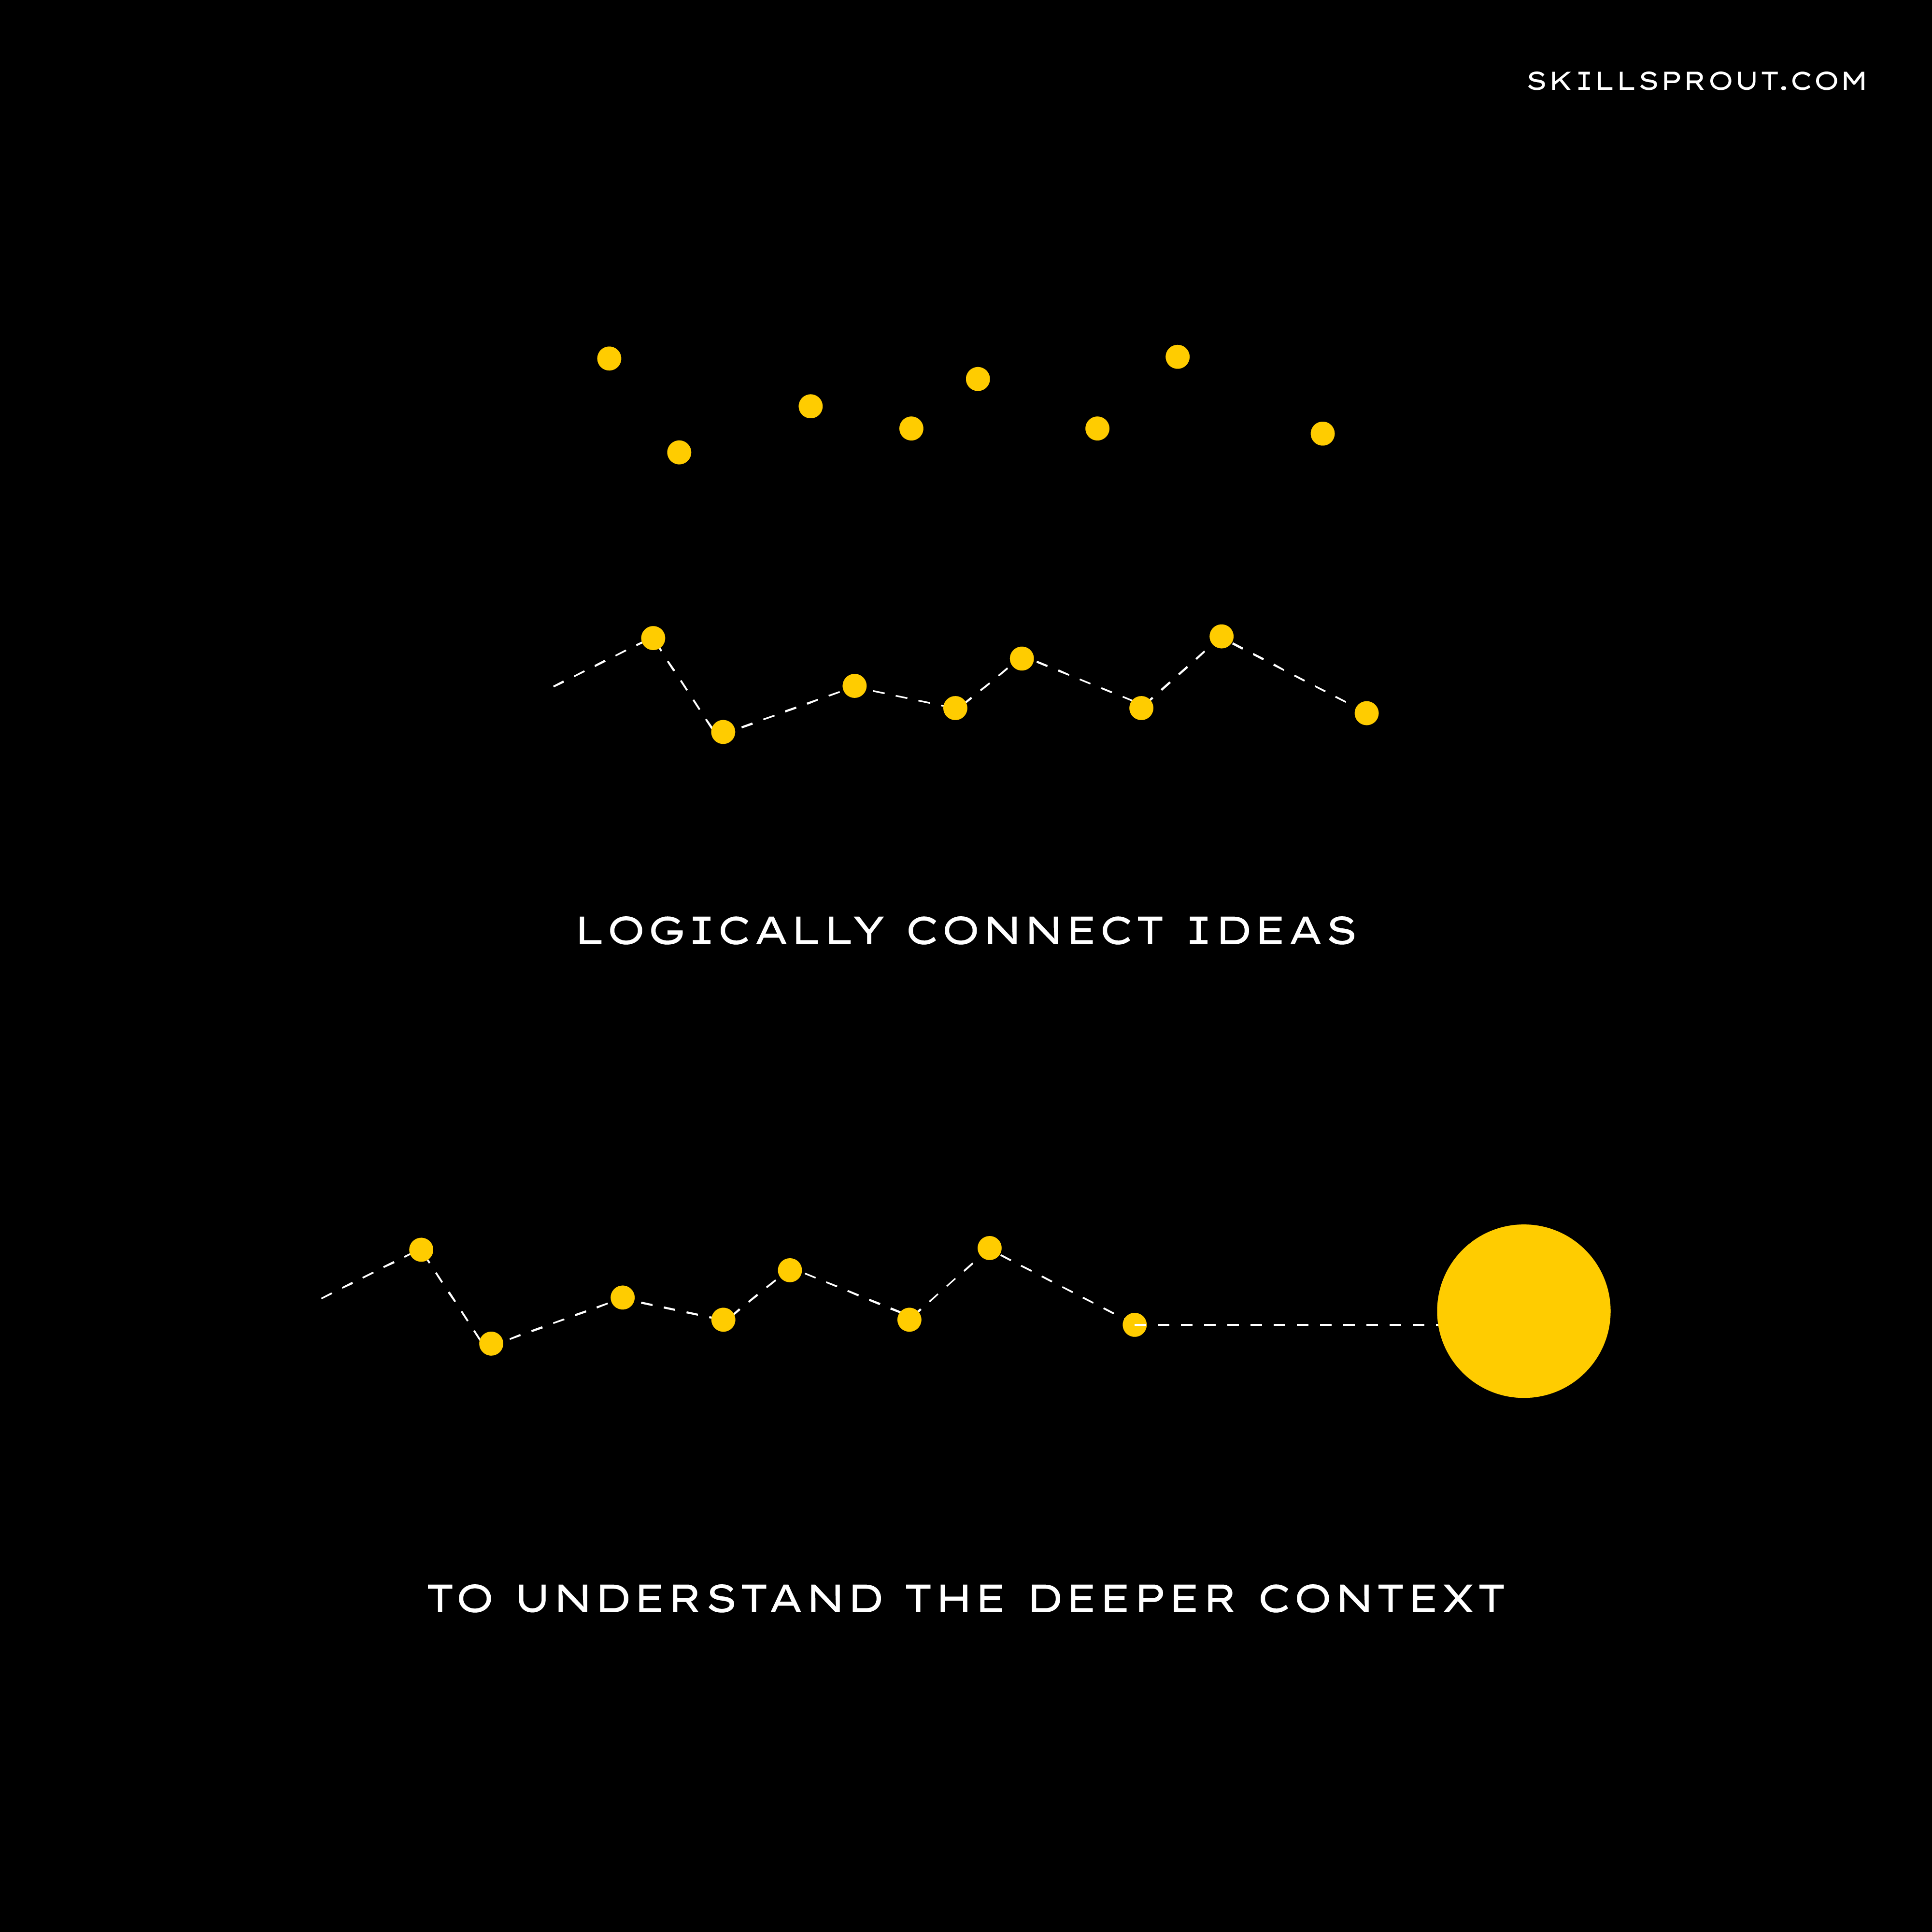 Critical thinking - logically connect ideas to understand the deeper context.